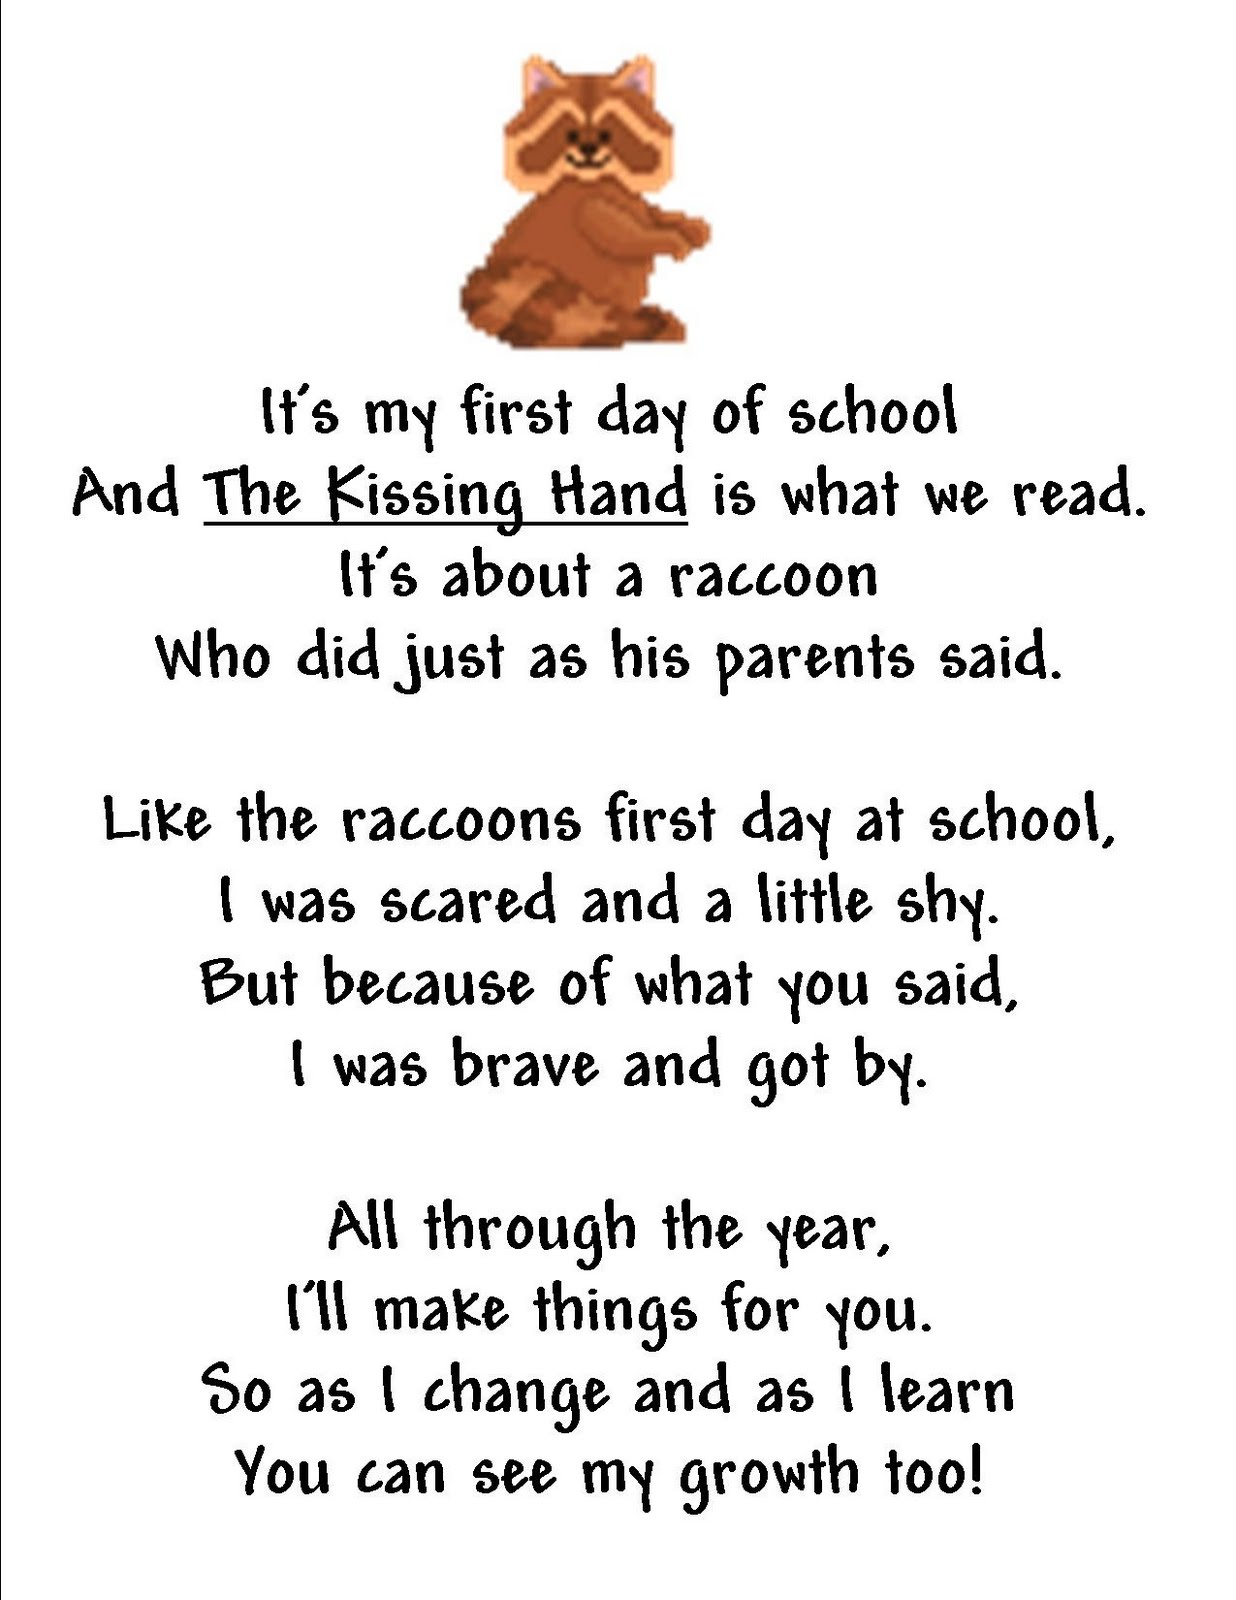 Educationtipster Kathy Stemke Author Educator First Day Of School Poem